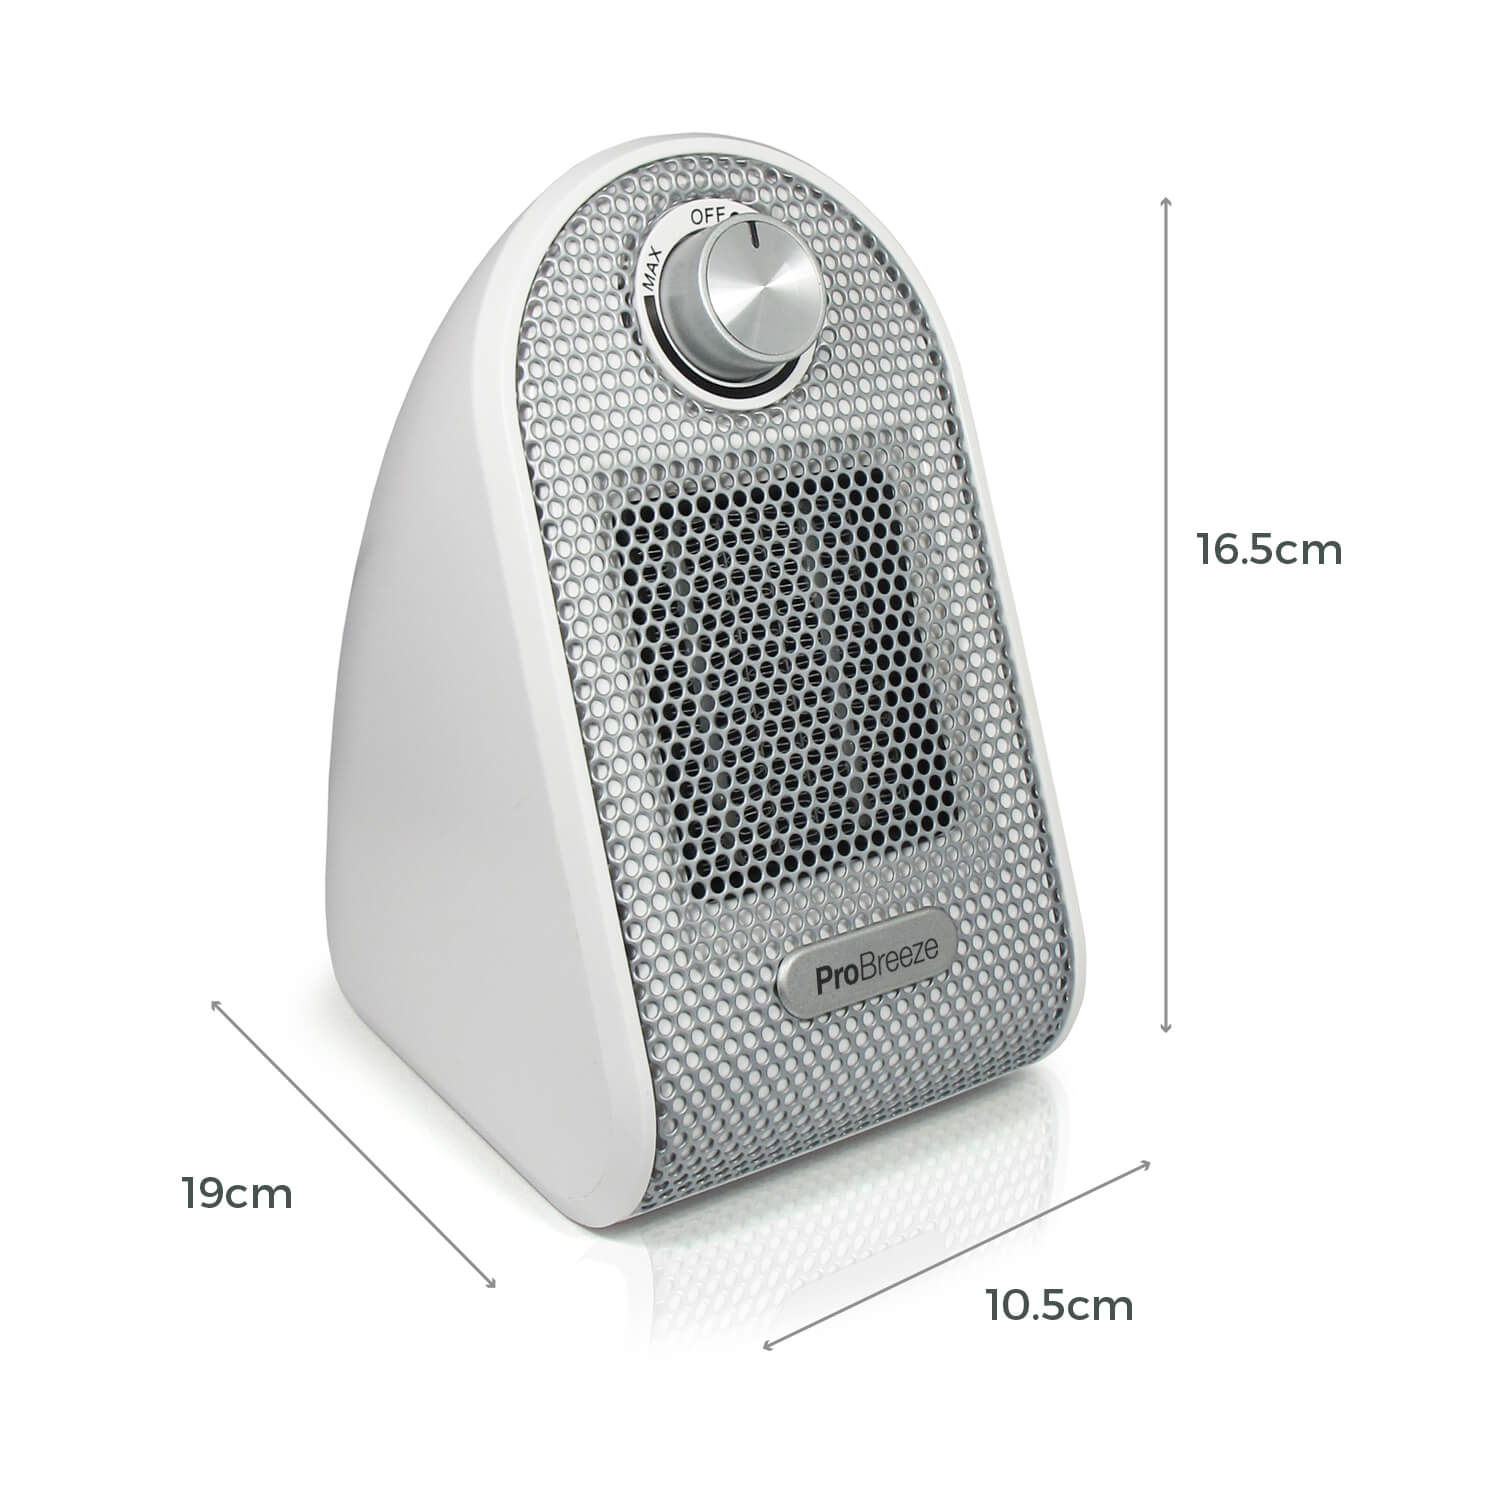 500w Mini Ceramic Fan Heater For Desks Tables Pro Breeze Electric Vehicles 1500w 240v Element Portable Personal